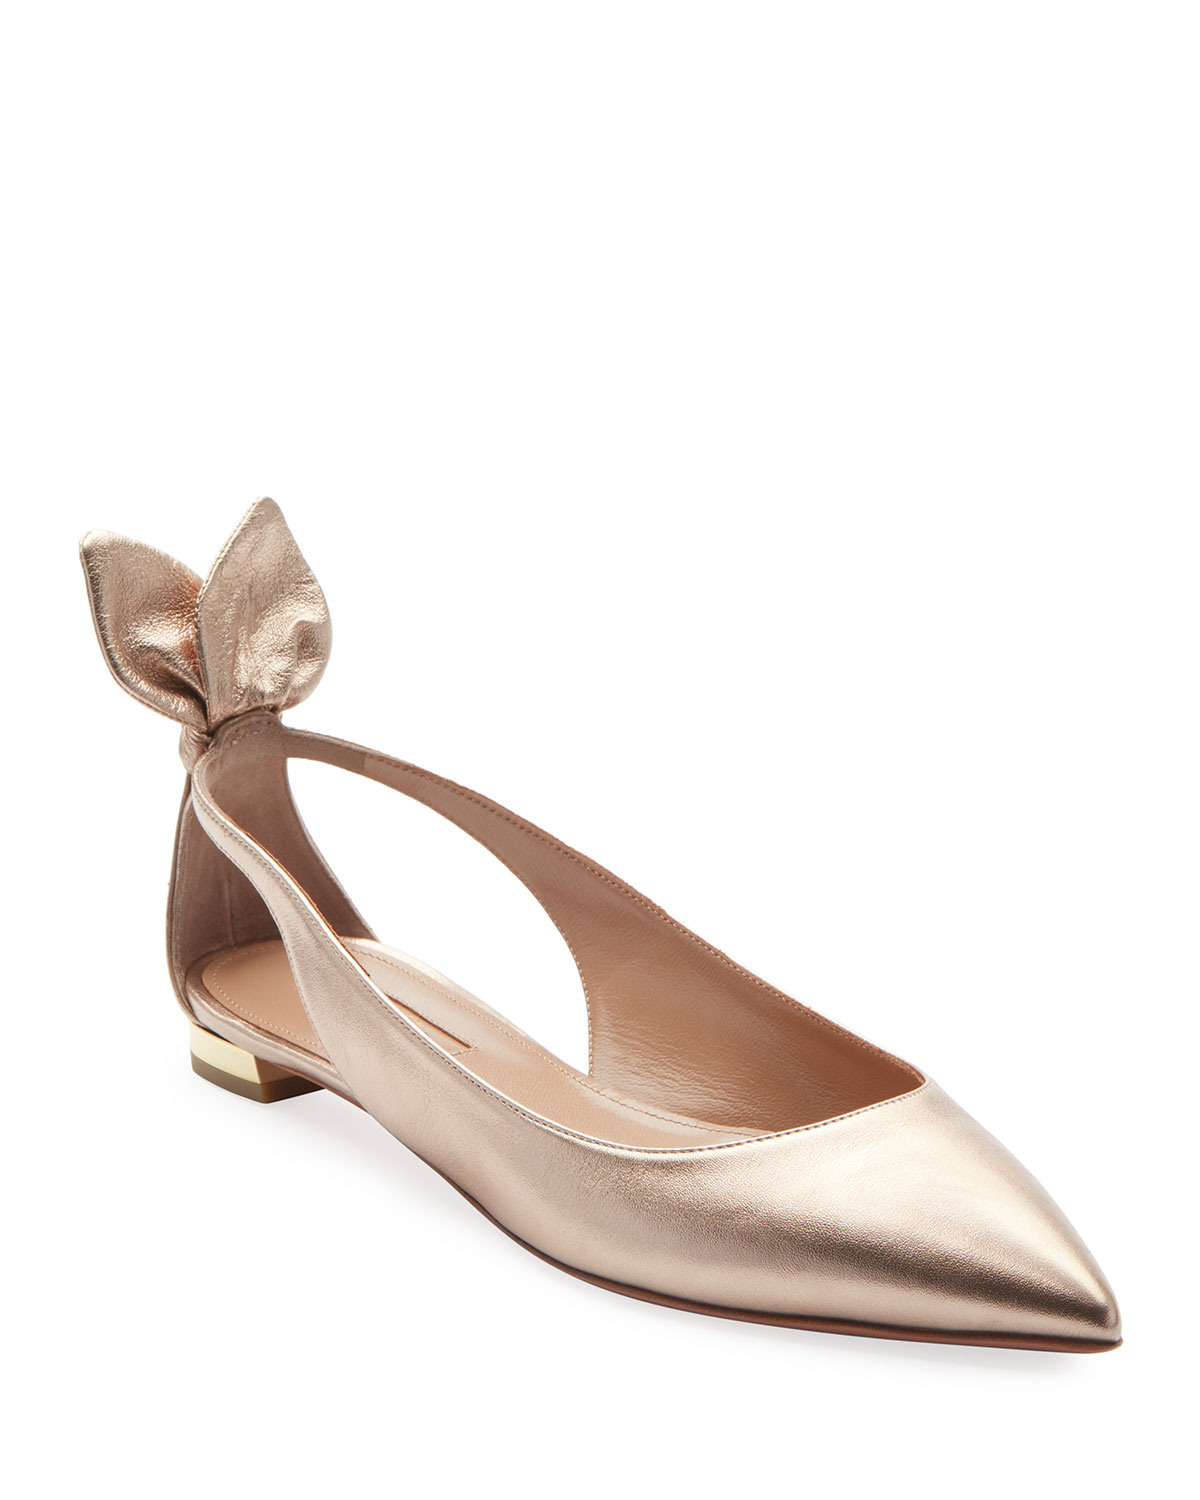 Deneuve Metallic Leather Ballet Flats by Aquazzura